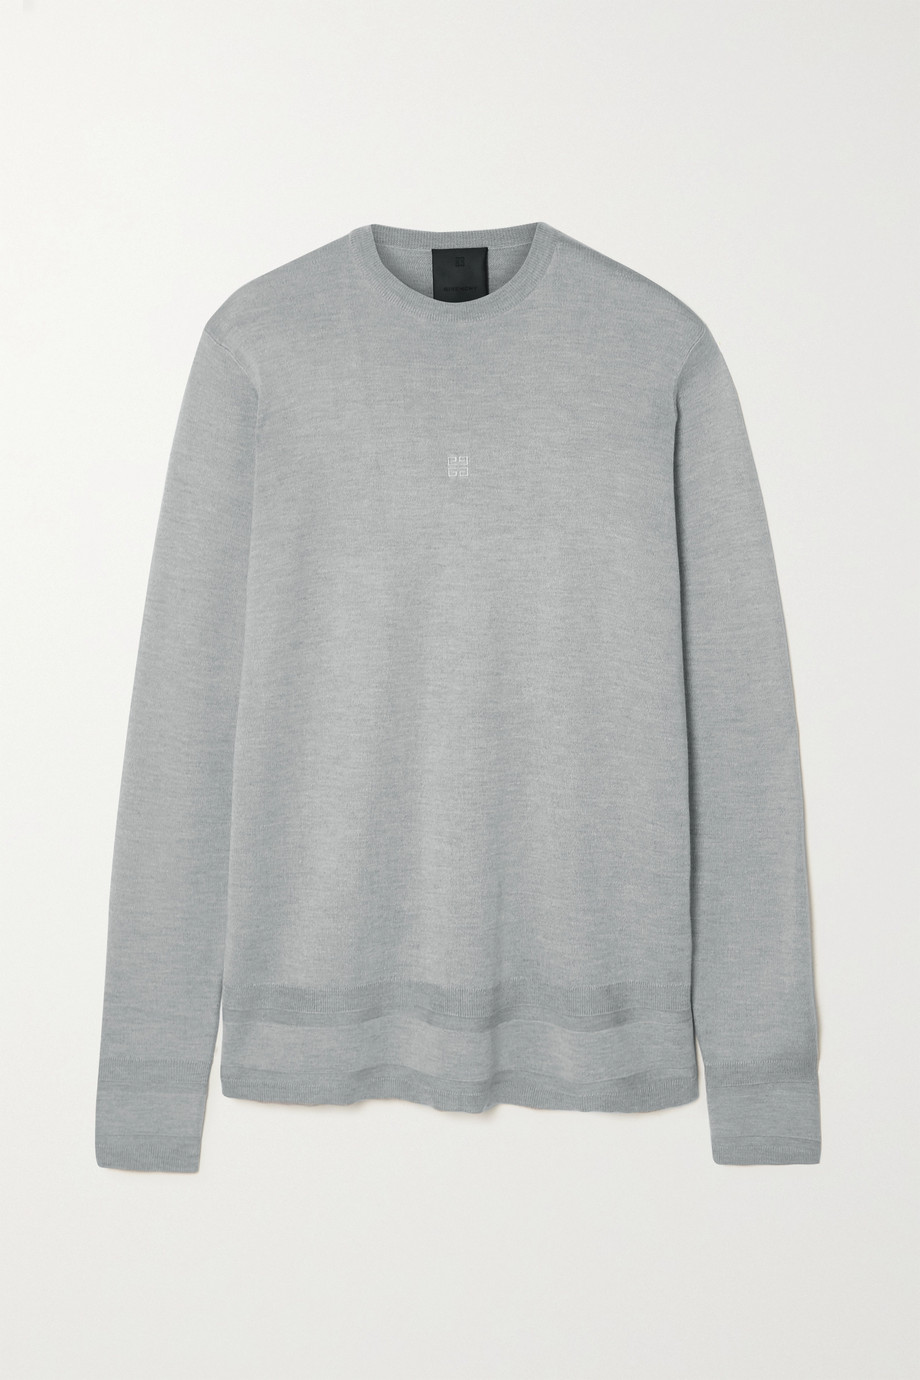 Givenchy Pull en soie à broderies